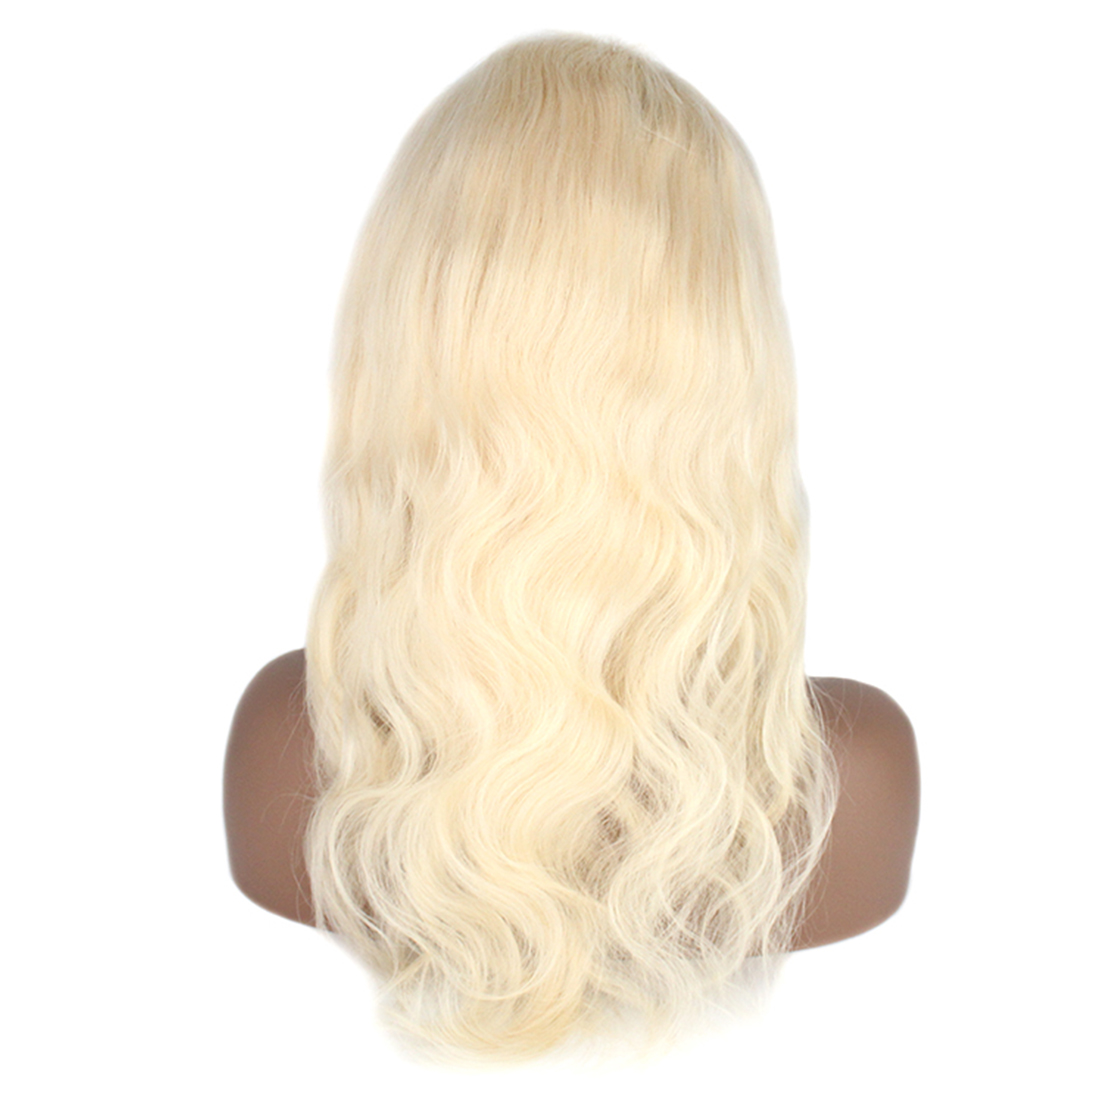 body wave blond full lace wig 06